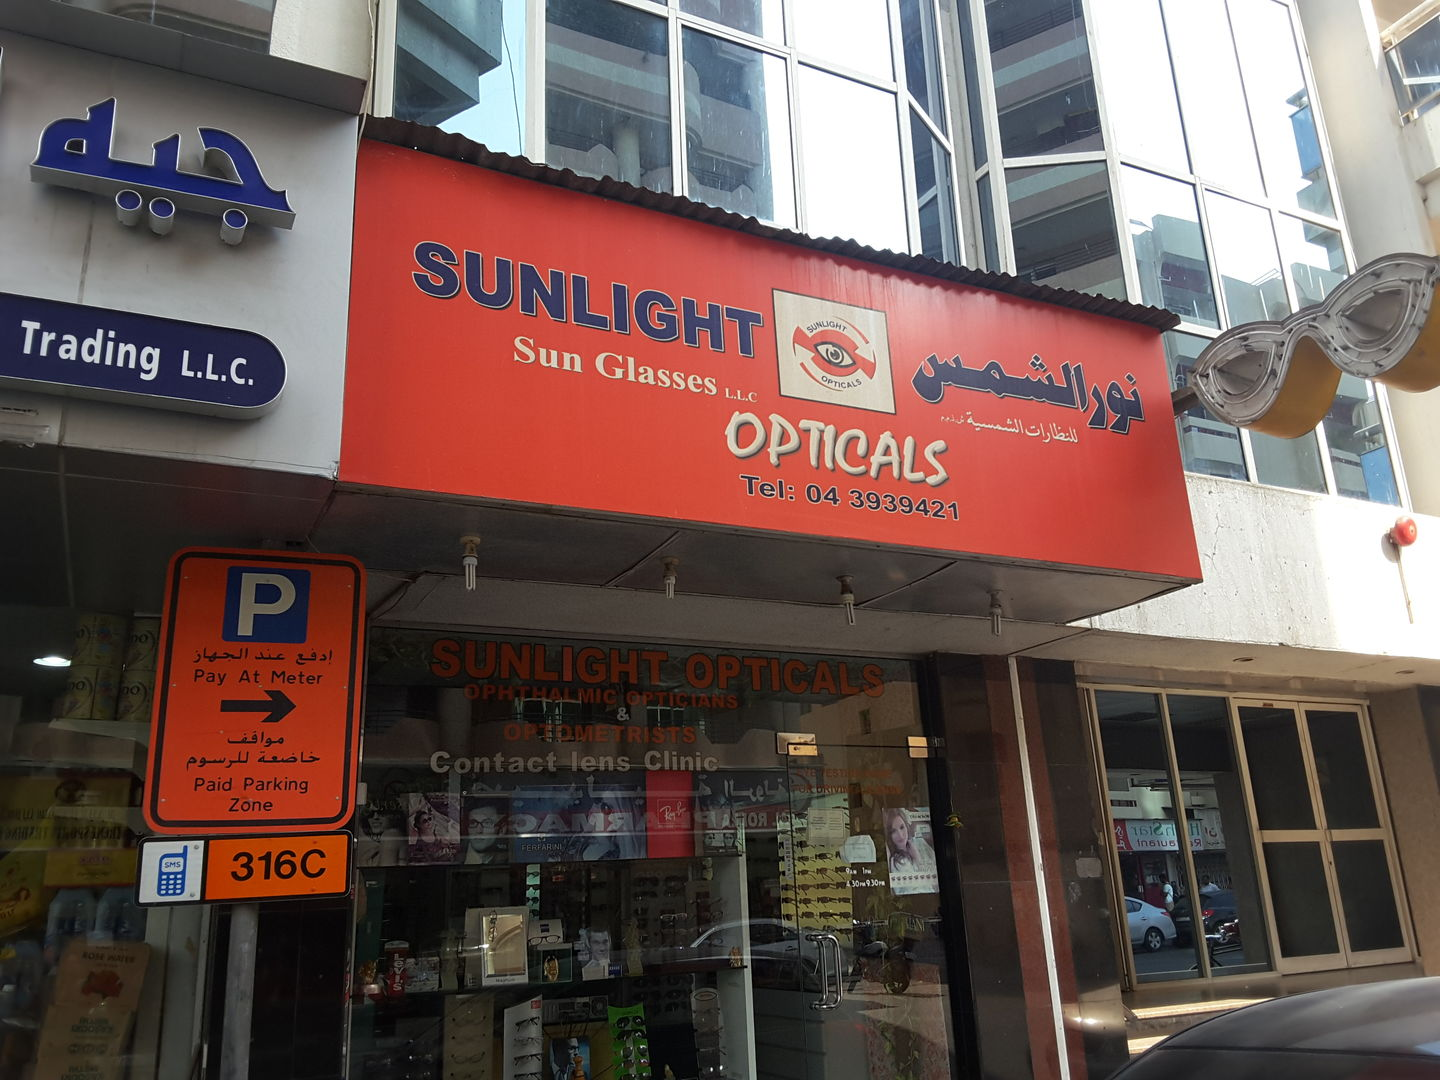 HiDubai-business-sunlight-sun-glasses-shopping-watches-eyewear-al-raffa-al-raffa-dubai-2